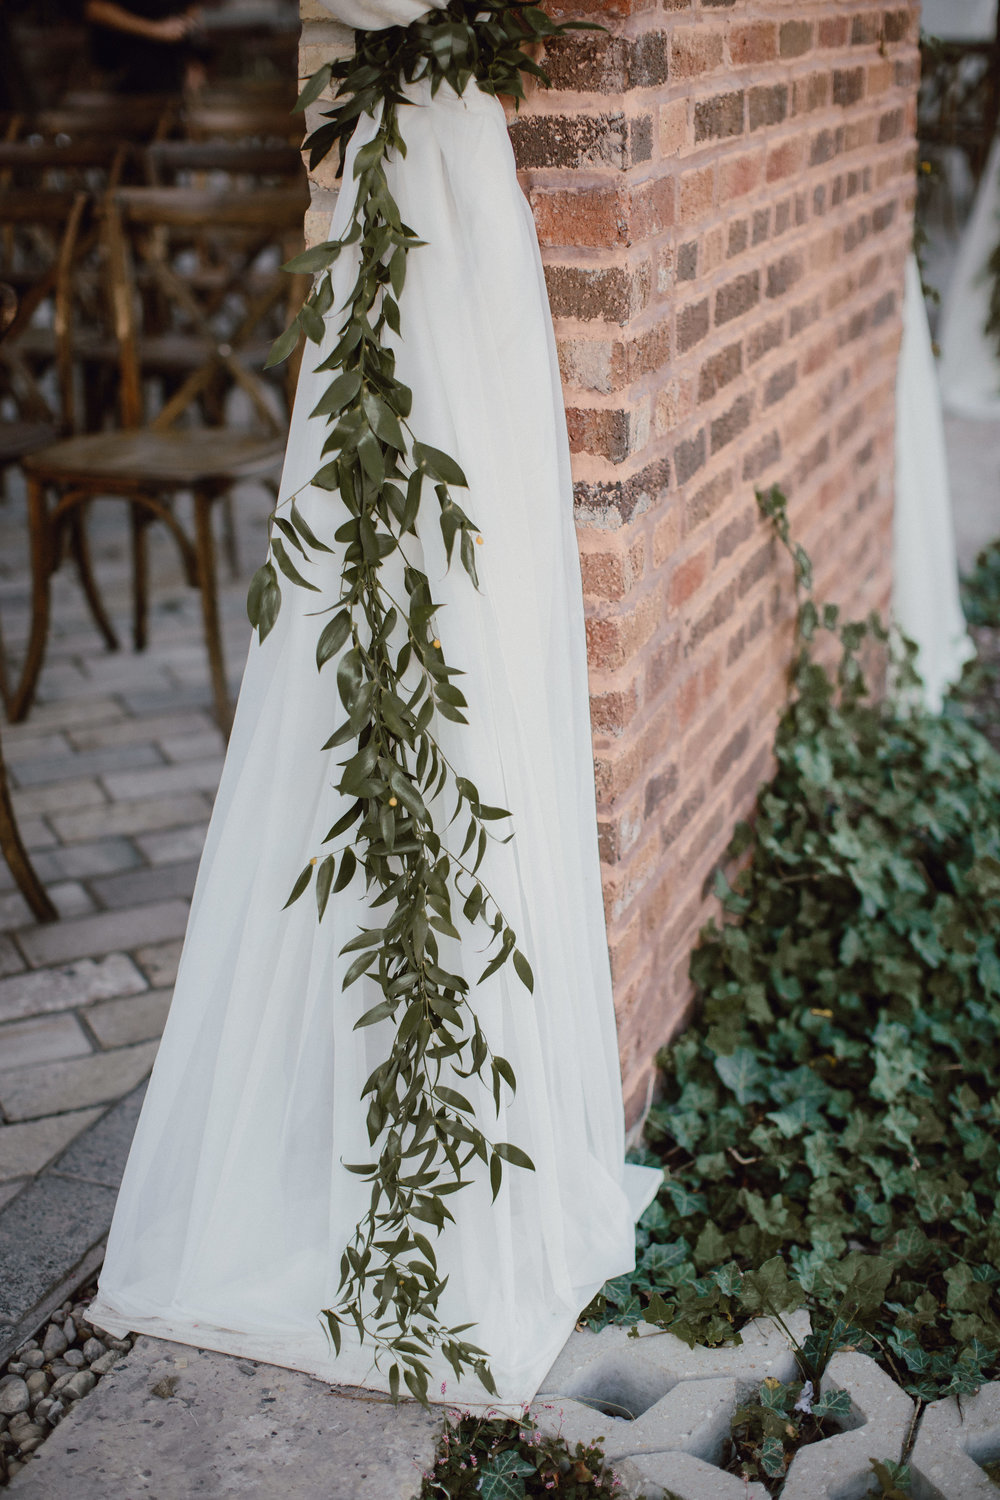 Fleur-Inc-Bridgeport-Art-Center-Sculpture-Garden-Wedding-Estera-Events-Megan-Saul-Photography-September-Flowers-ceremony-decor